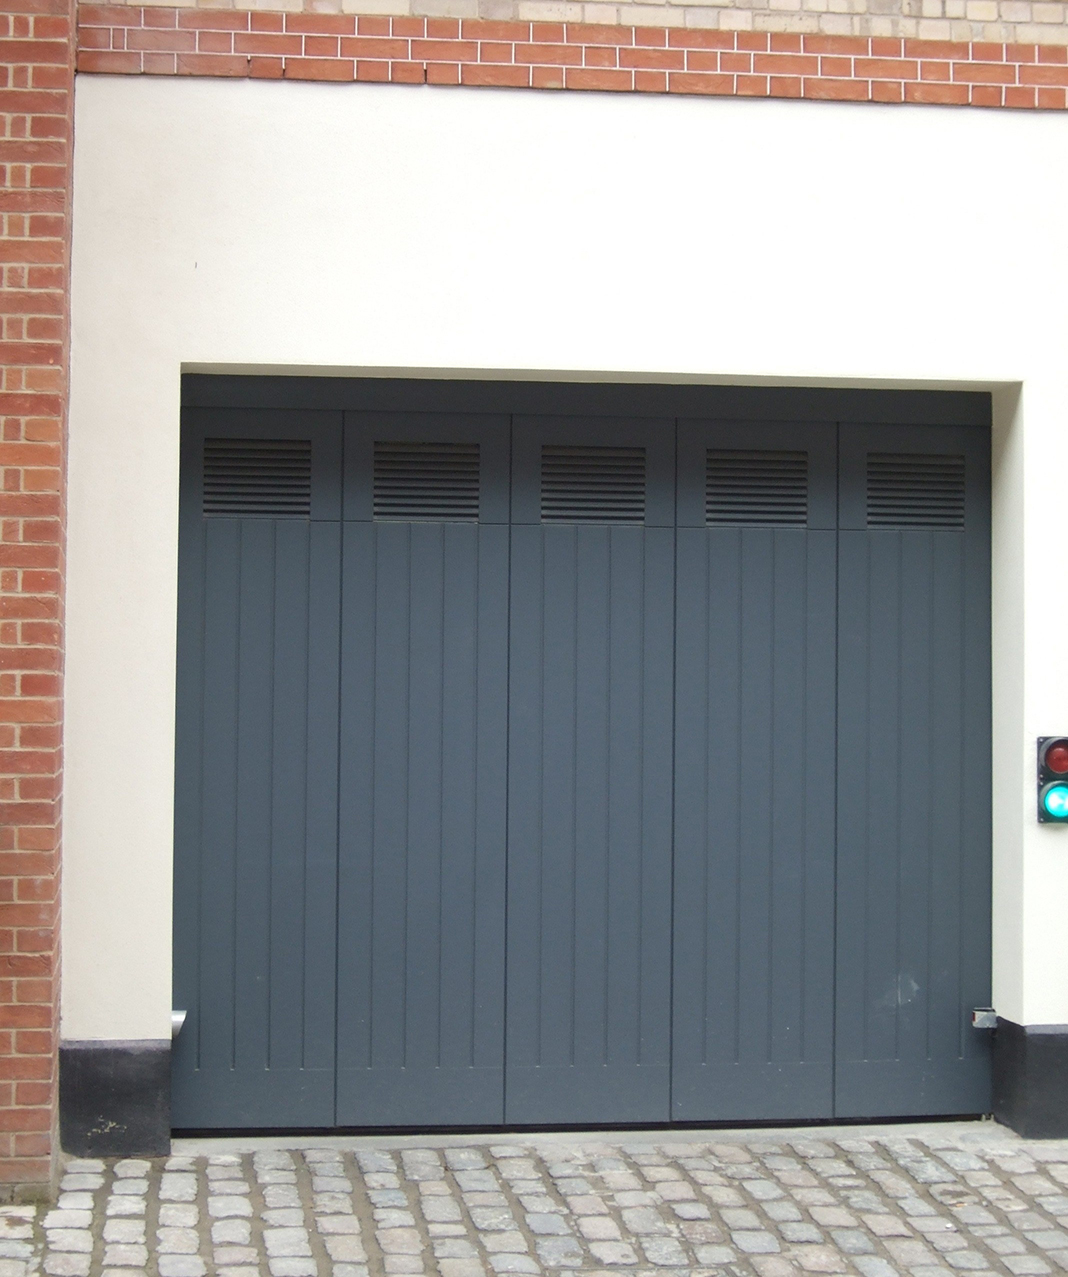 Rundum Meir doors with integrated vents offer fresh thinking for air flow in garages